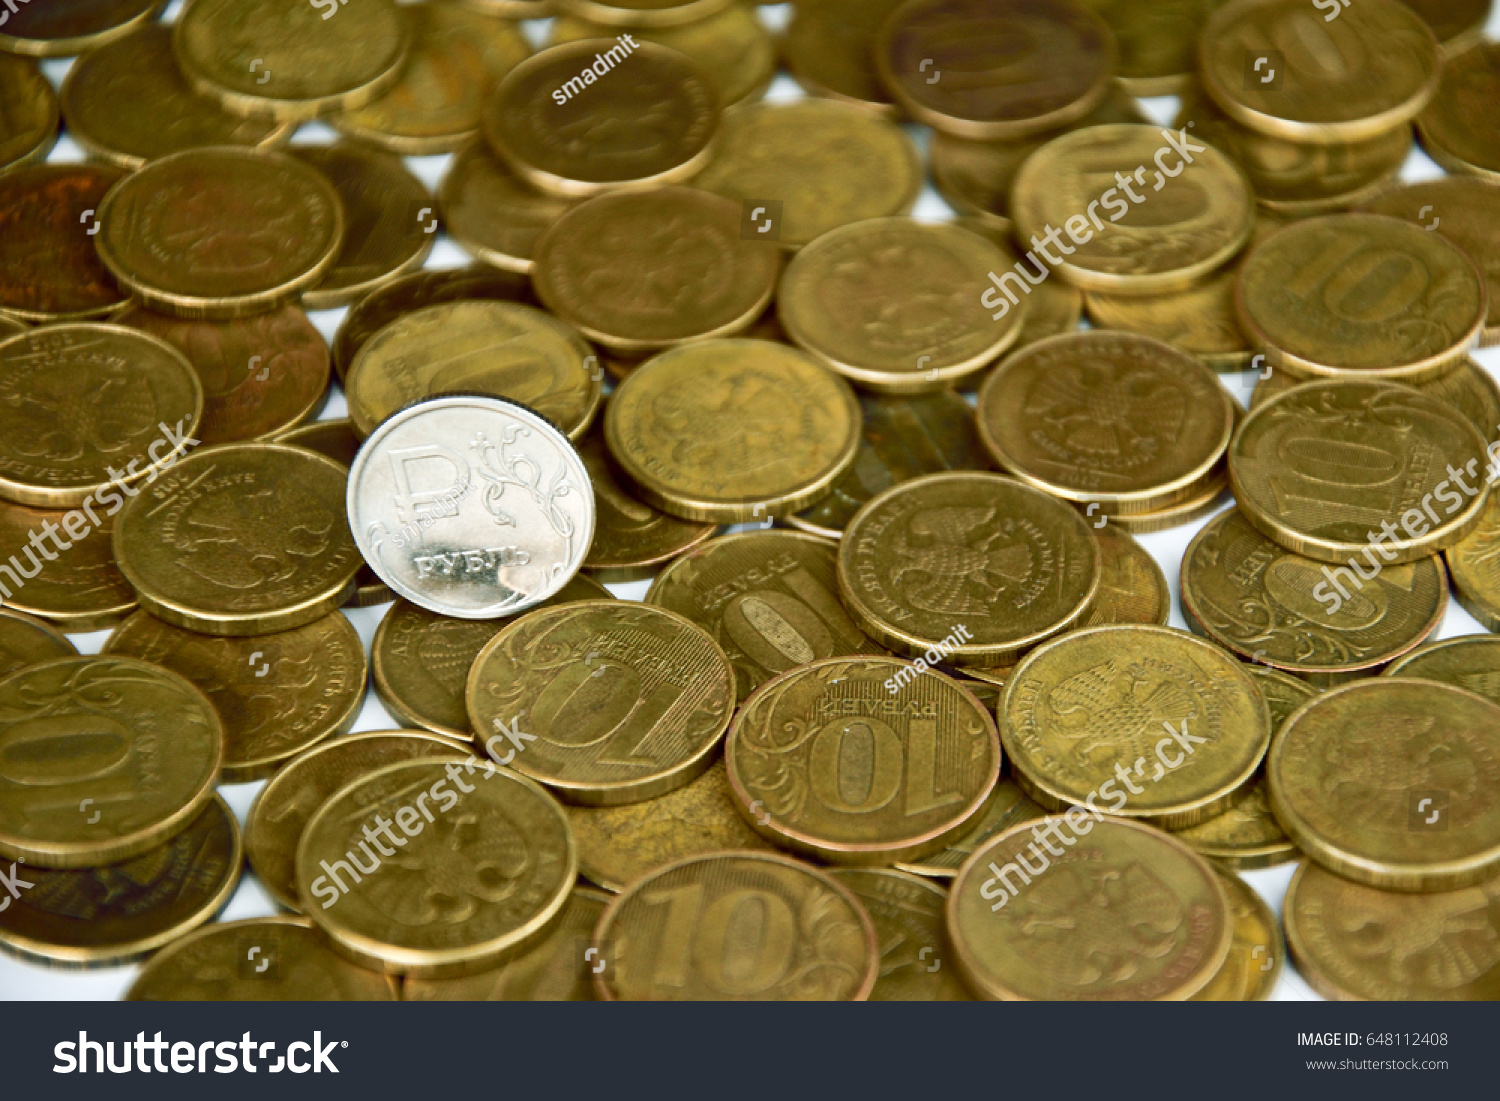 Coin With Symbol Of Russian Ruble On The Yellow Coins Background